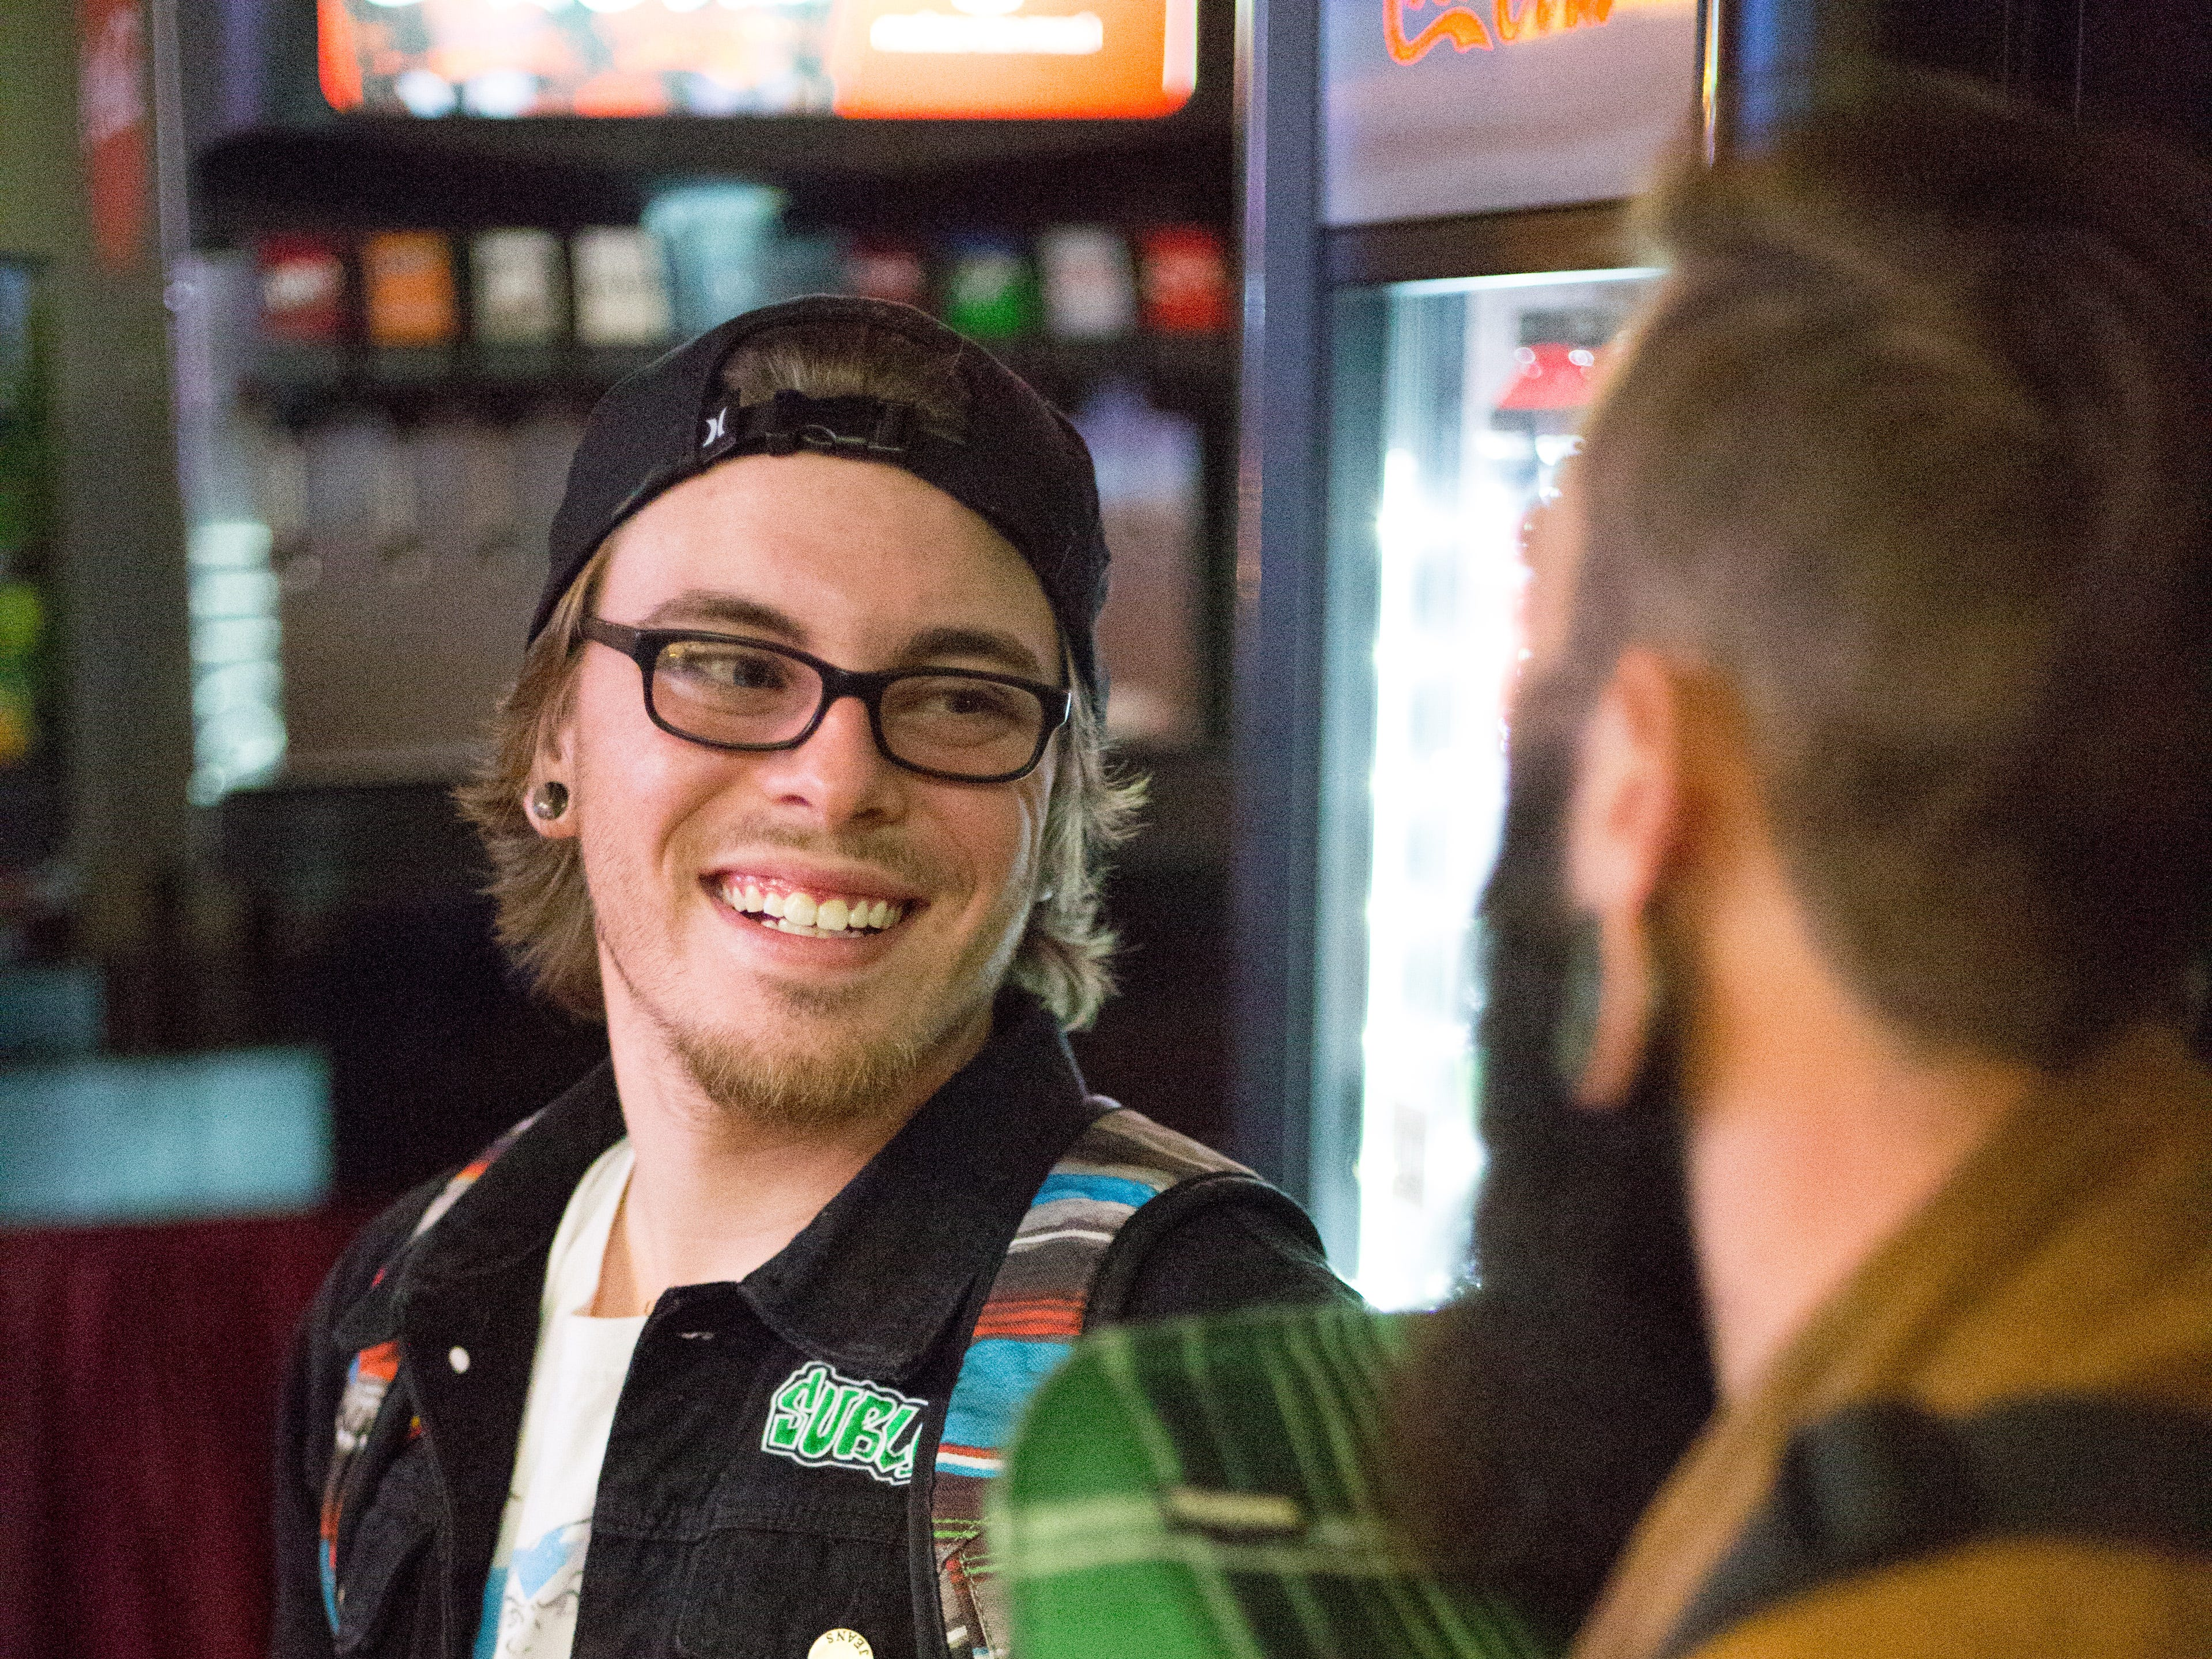 Austin Thornburg enjoys attending the Super Smash Brothers Ultimate Tournament presented by Big Dad Games at Filly's Game and Grill in Gallatin on Monday, Jan 14.